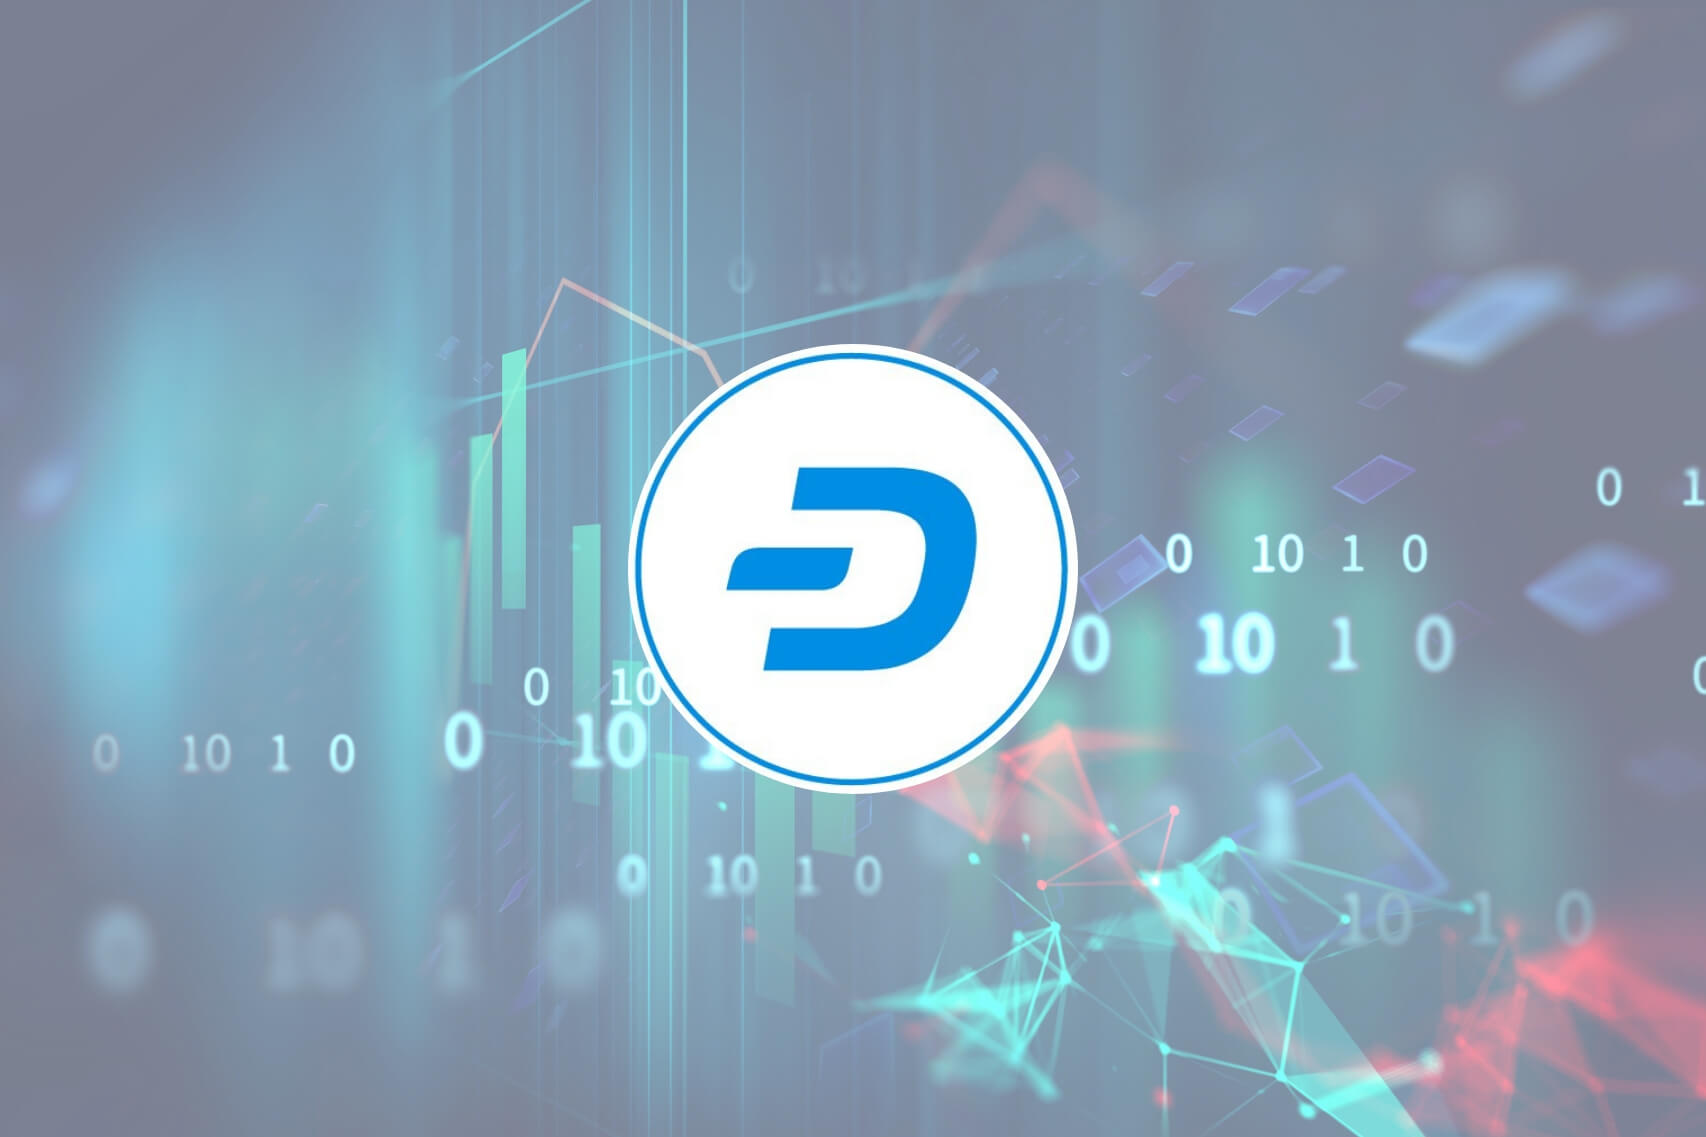 Dash Price Analysis: Bulls Retest DASH's Long-Term Descending Trend Line